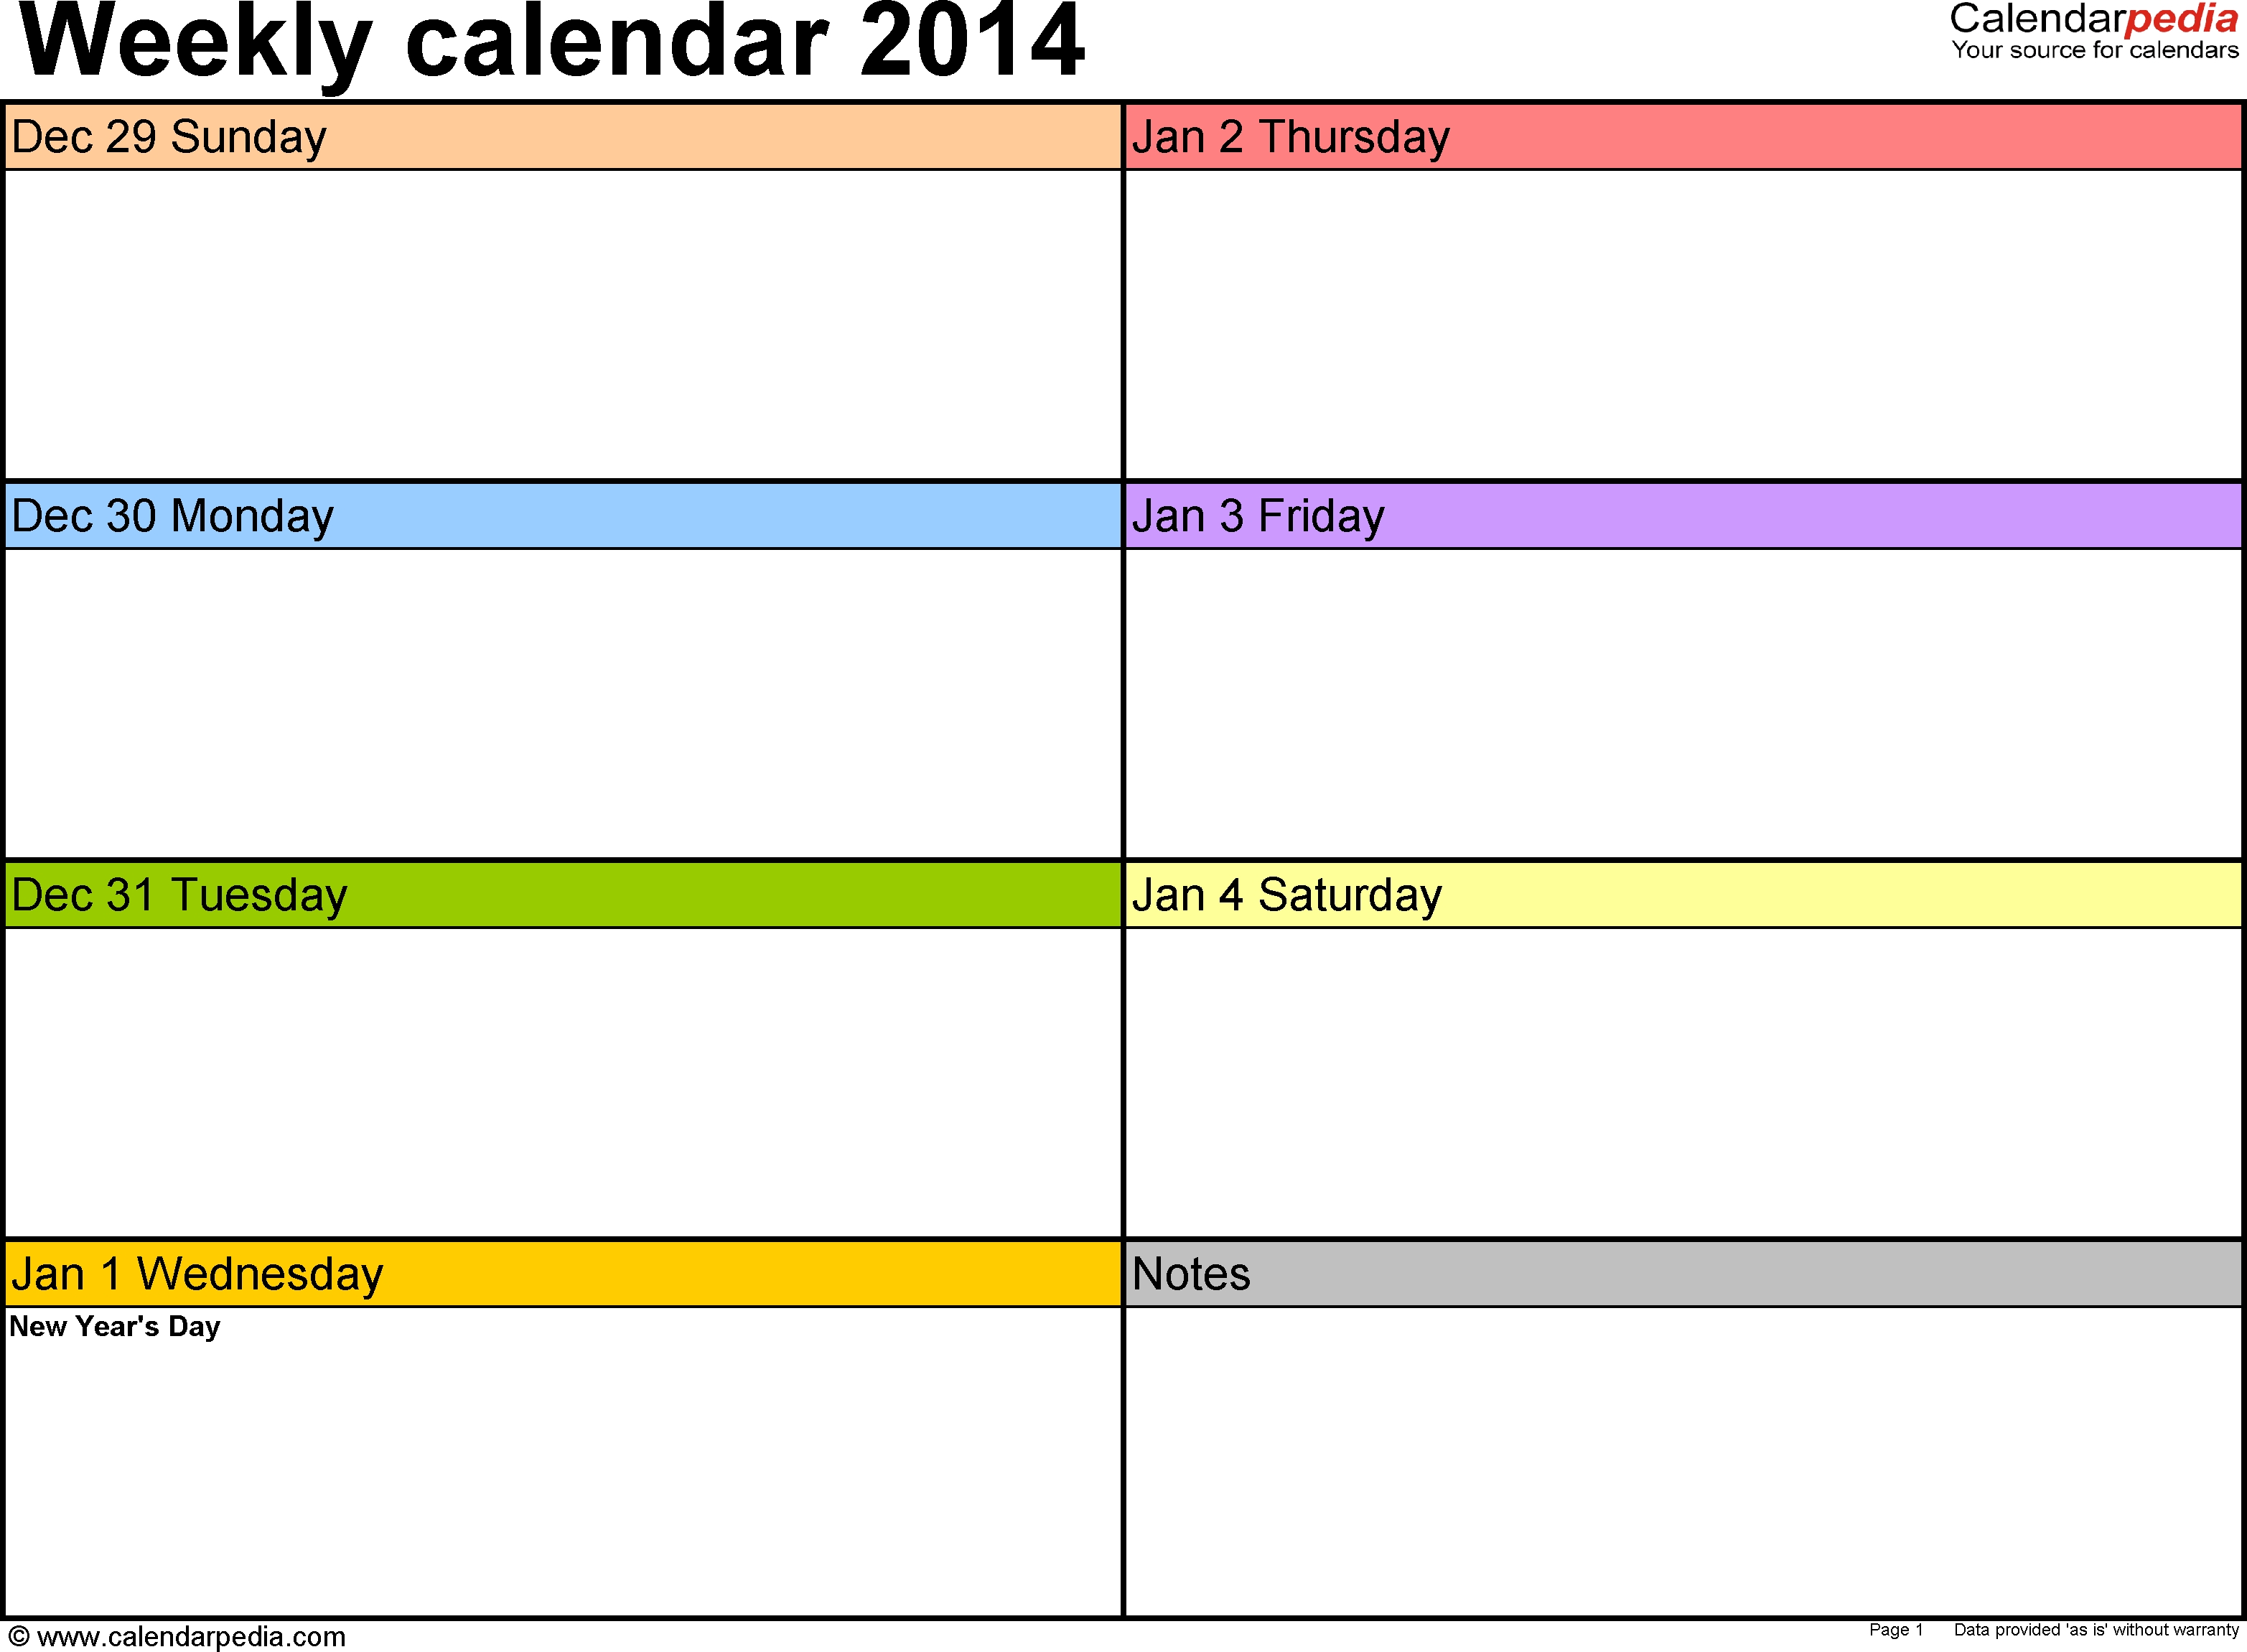 Weekly Calendar 2014 For Word - 4 Free Printable Templates within Free Printable Weekly Planner Calendars